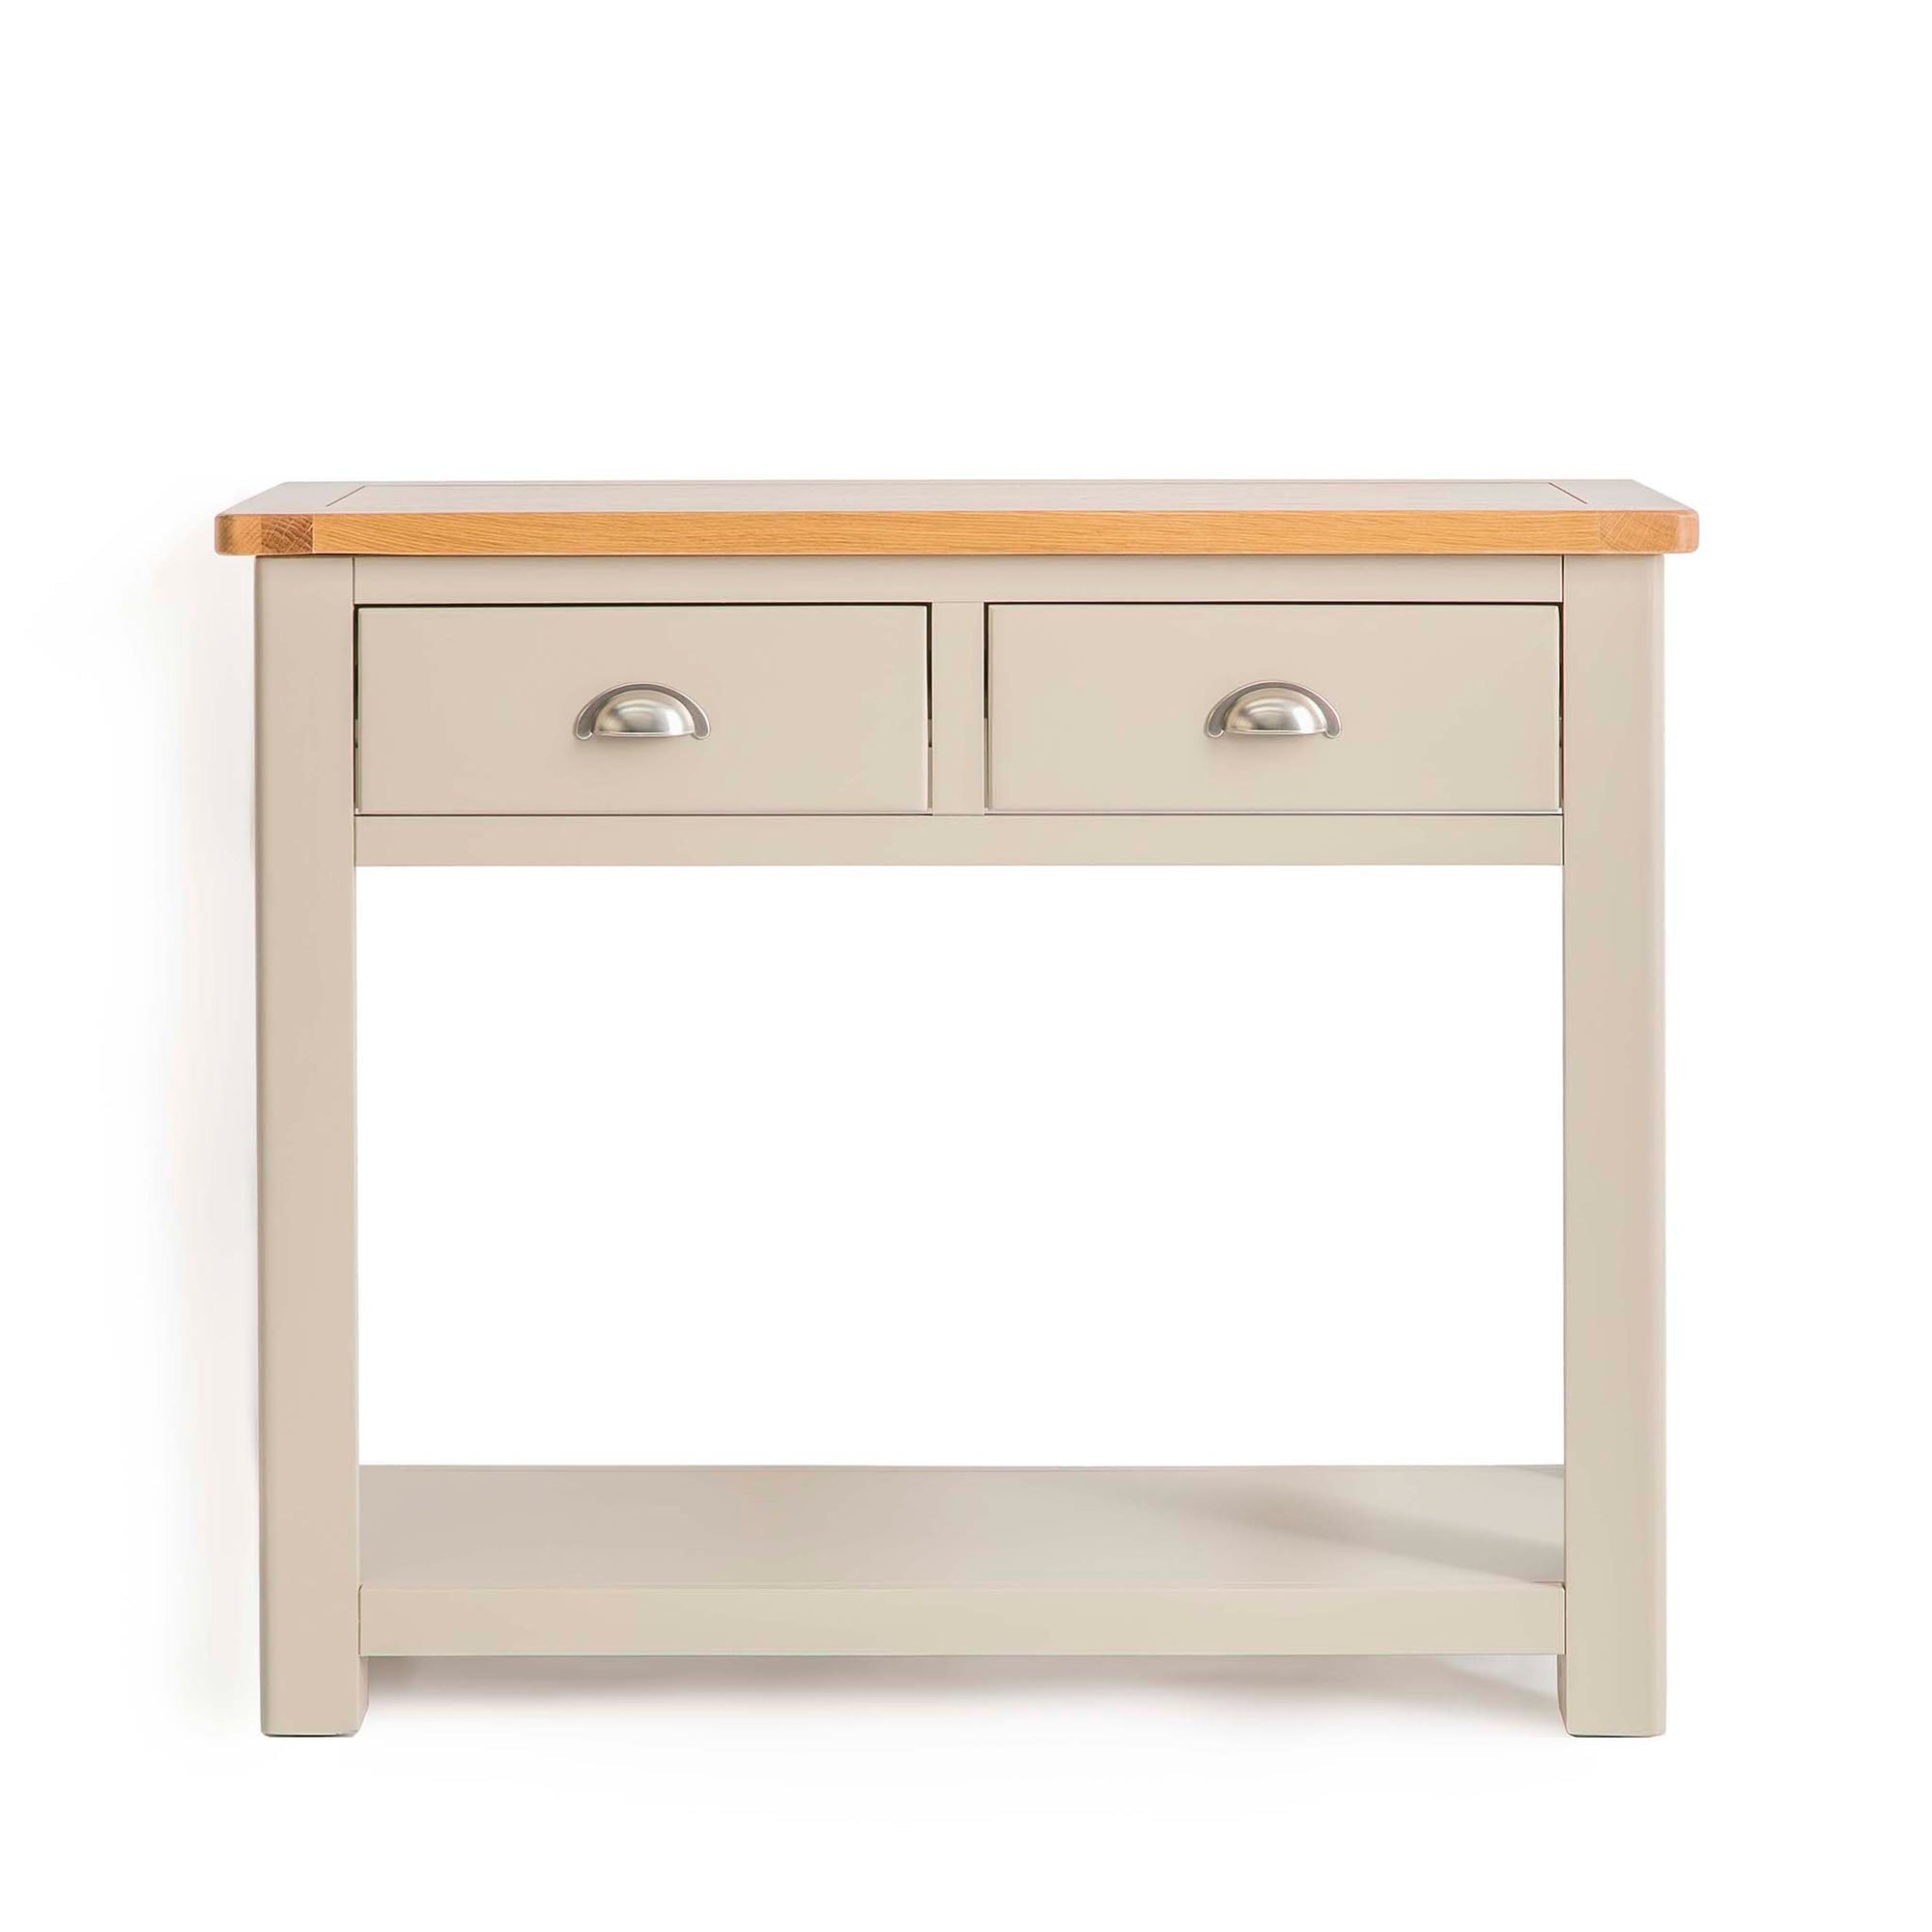 The Padstow Stone Grey Wooden Console Table by Roseland Furniture